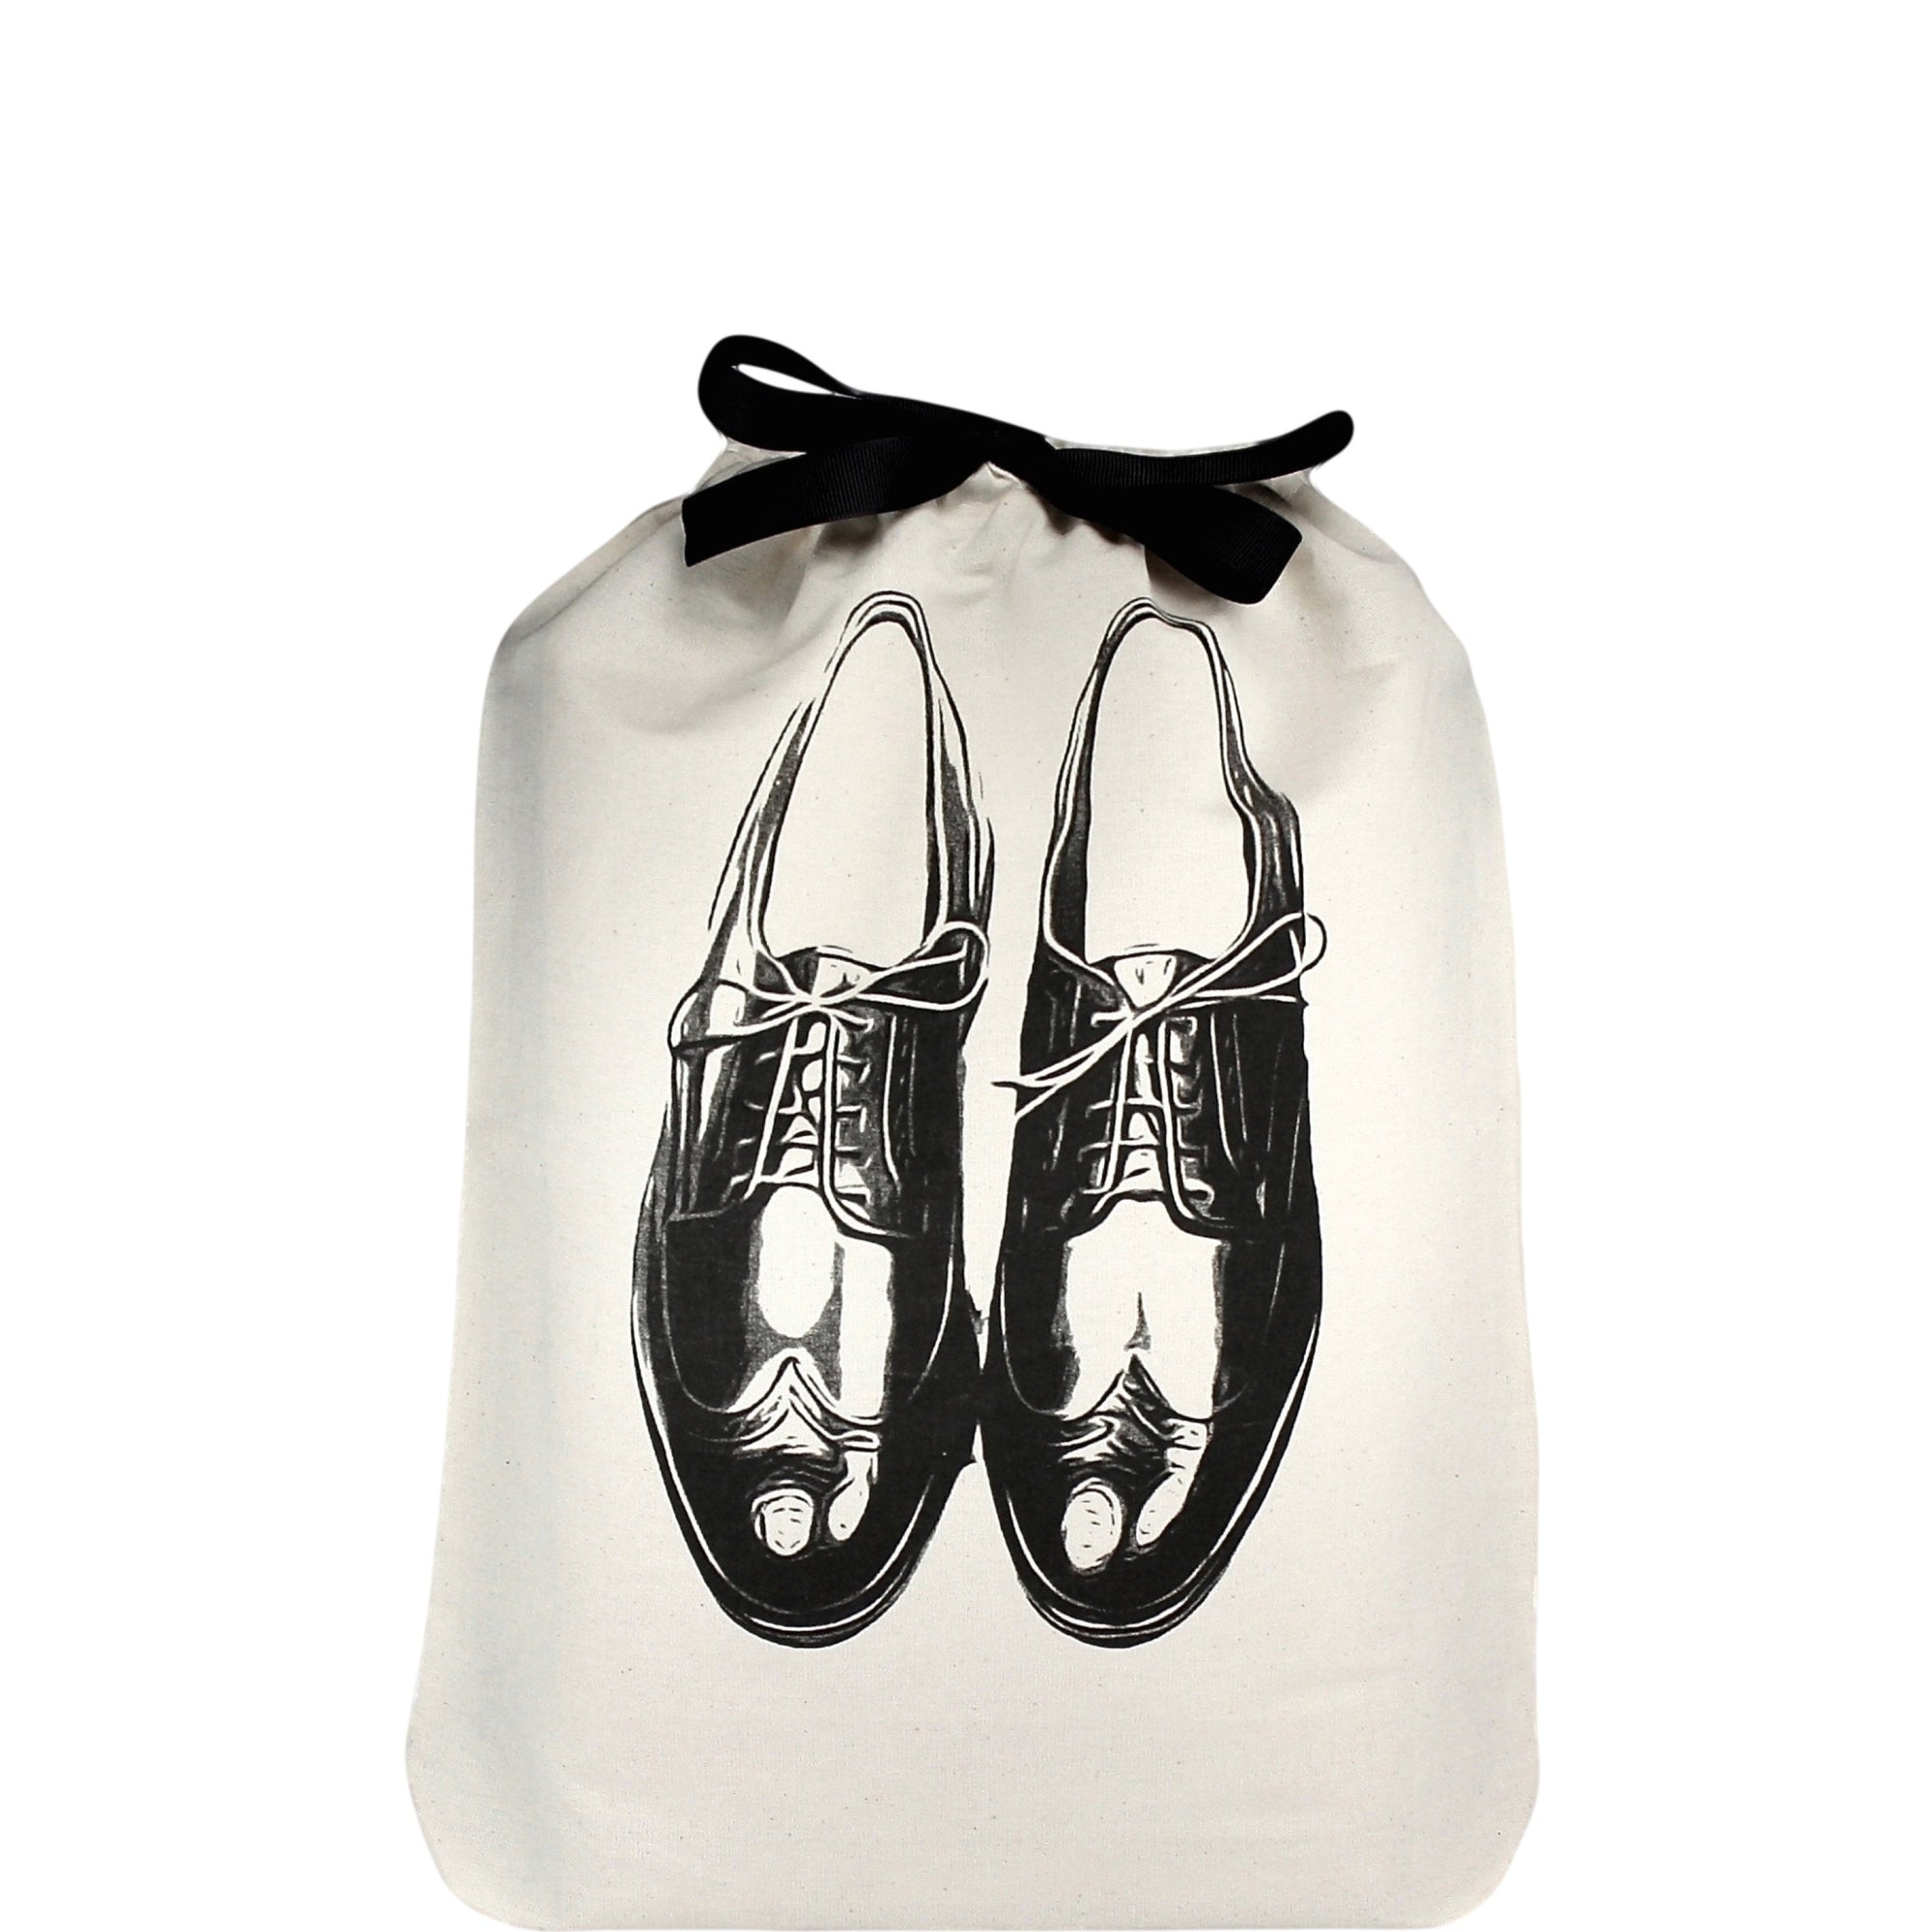 Men's shoe bag with mens dress shoes printed on the front.